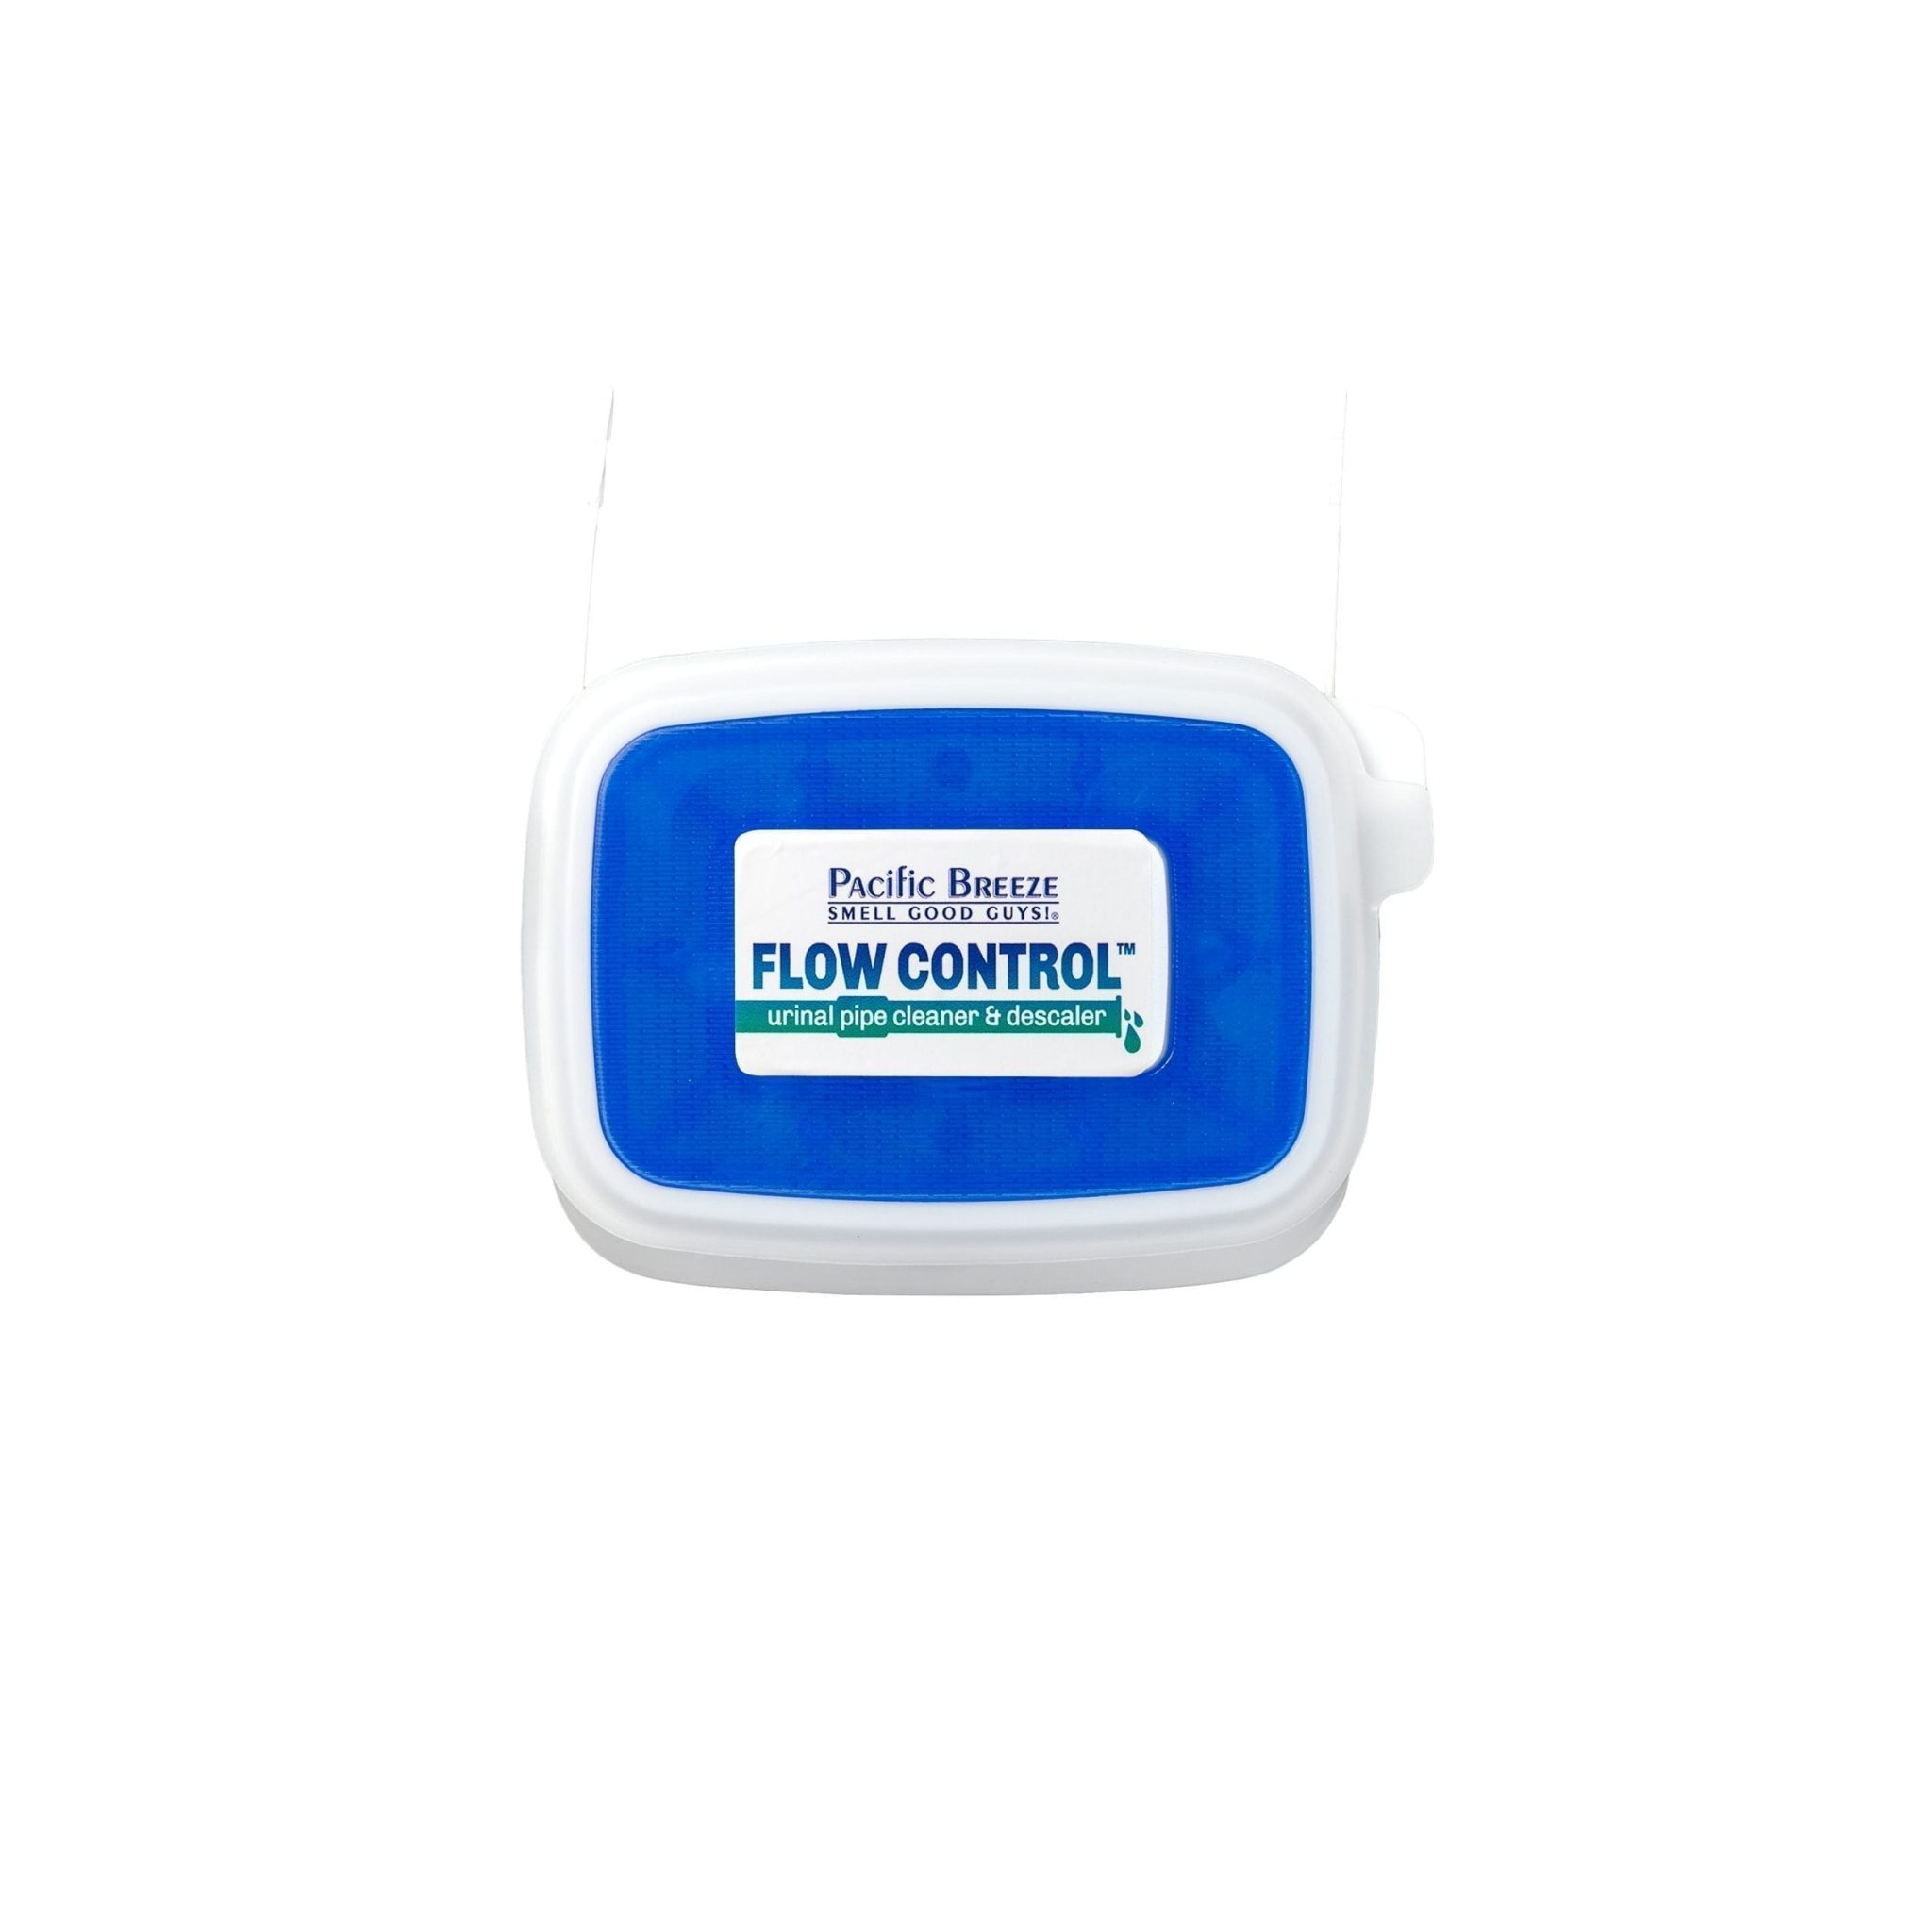 Flow Control™ Urinal Pipe Cleaner & Descaler